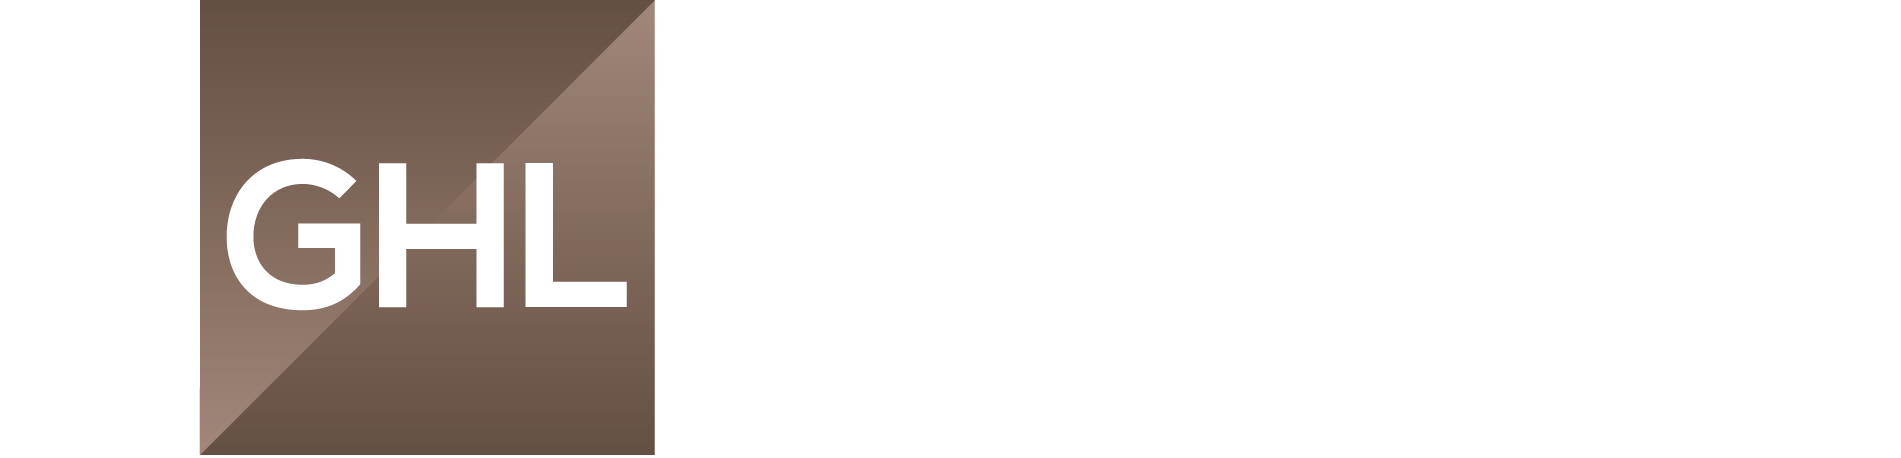 GHL Investments